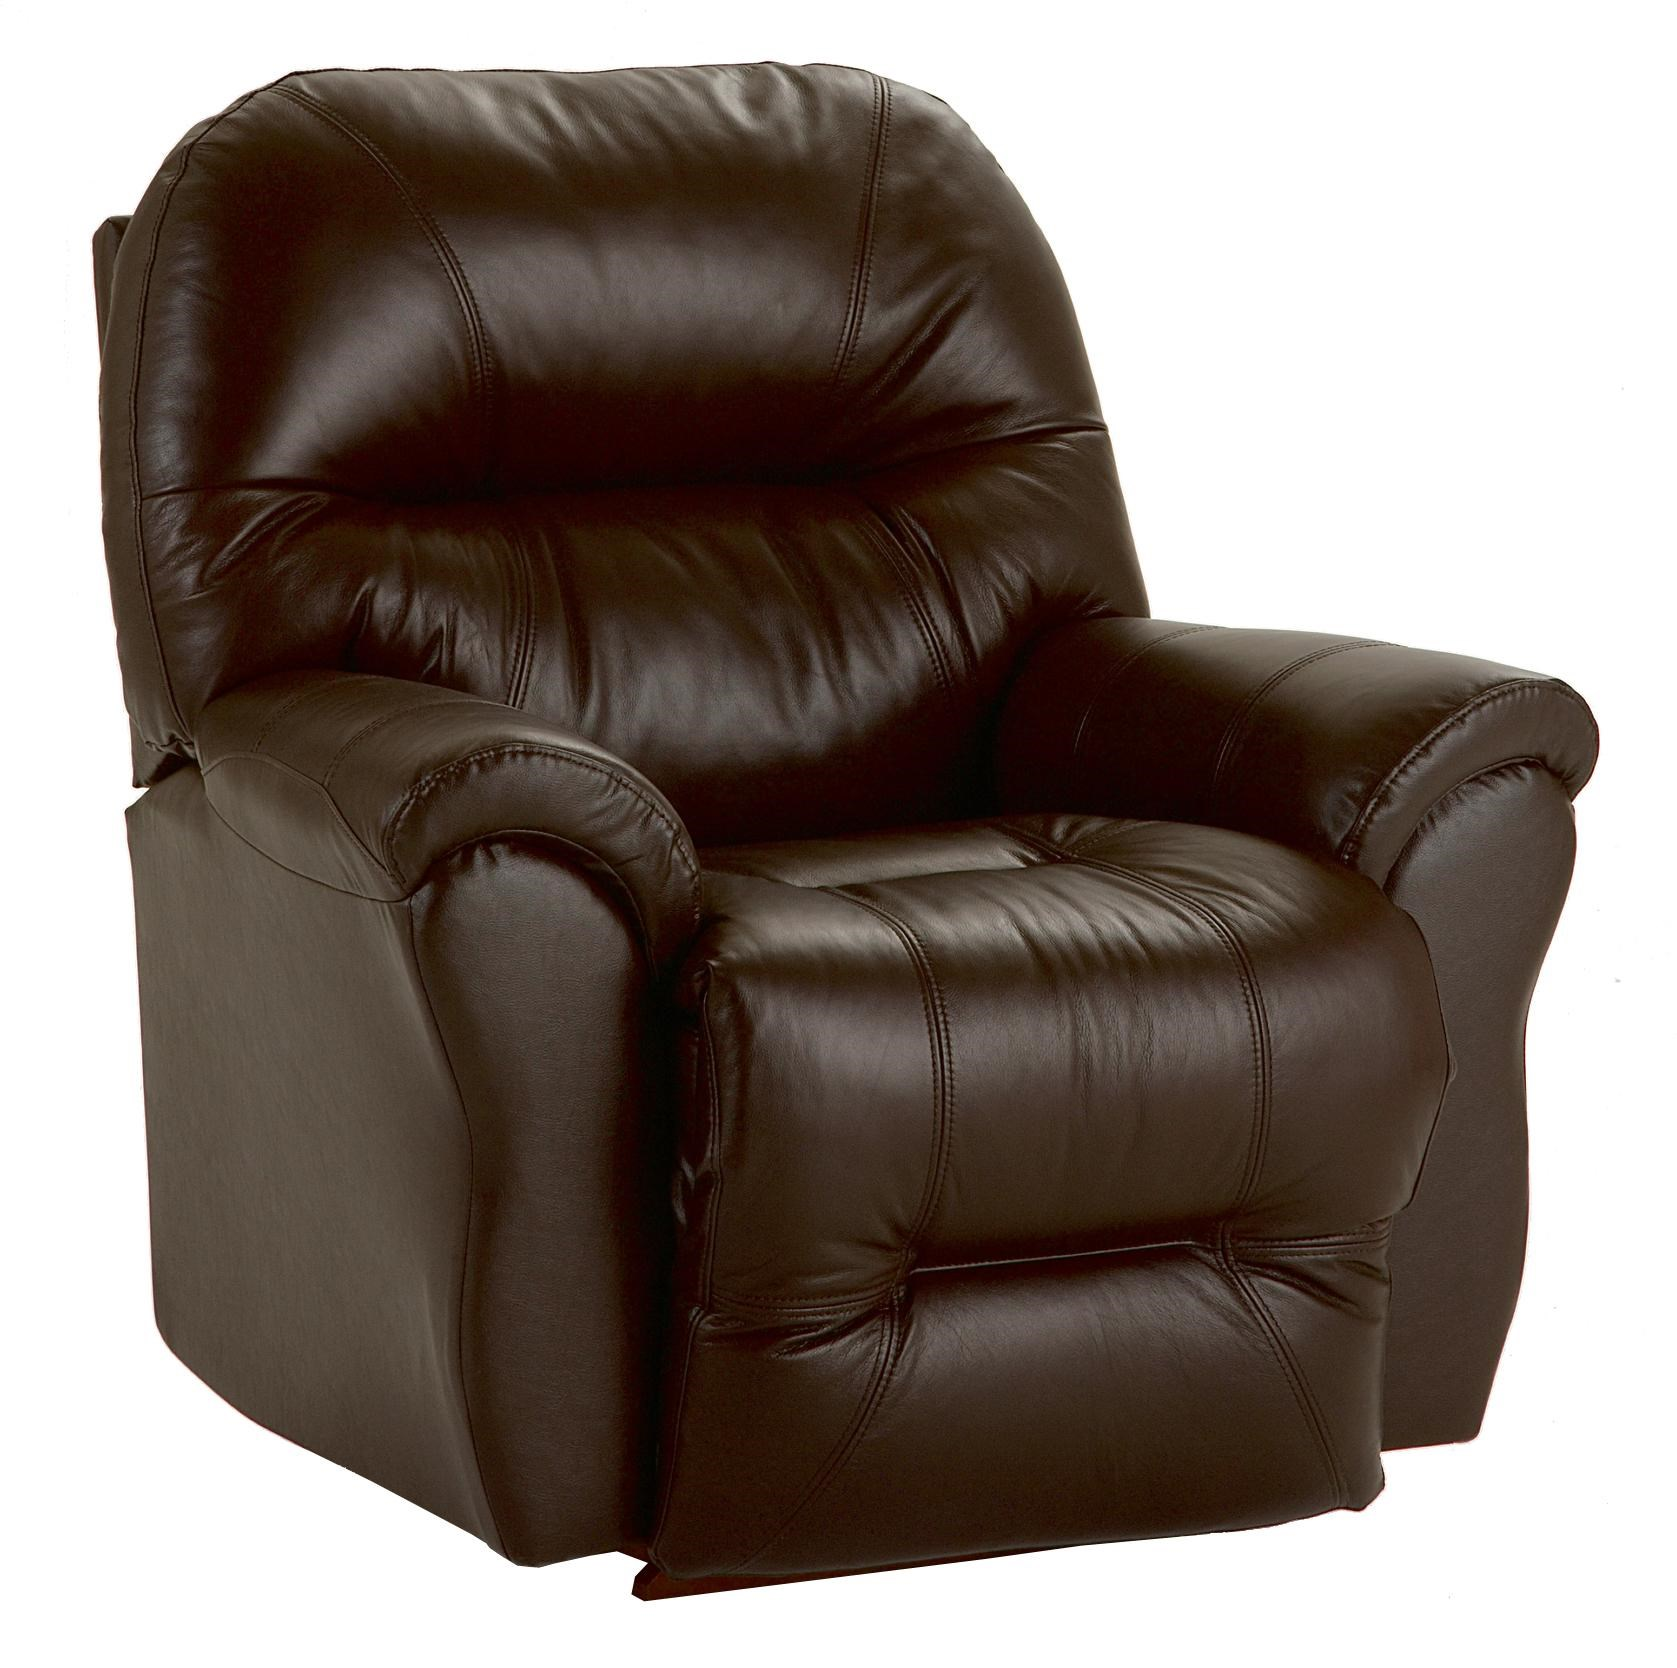 Best Home Furnishings BodieRecliner